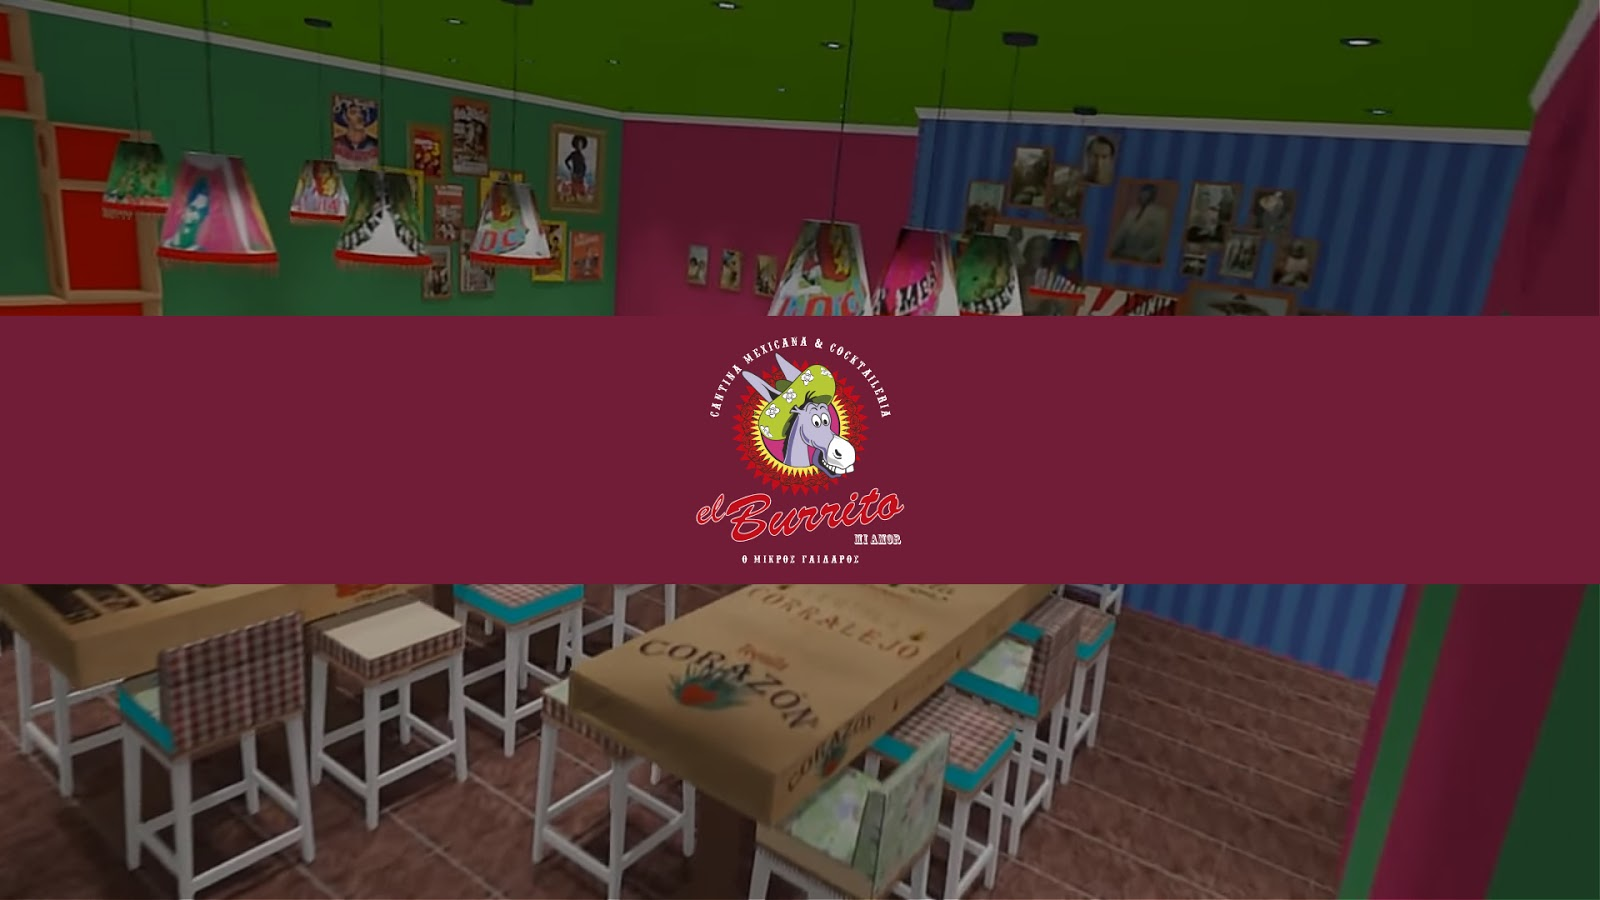 El Burrito Restaurant (3D Visualization)